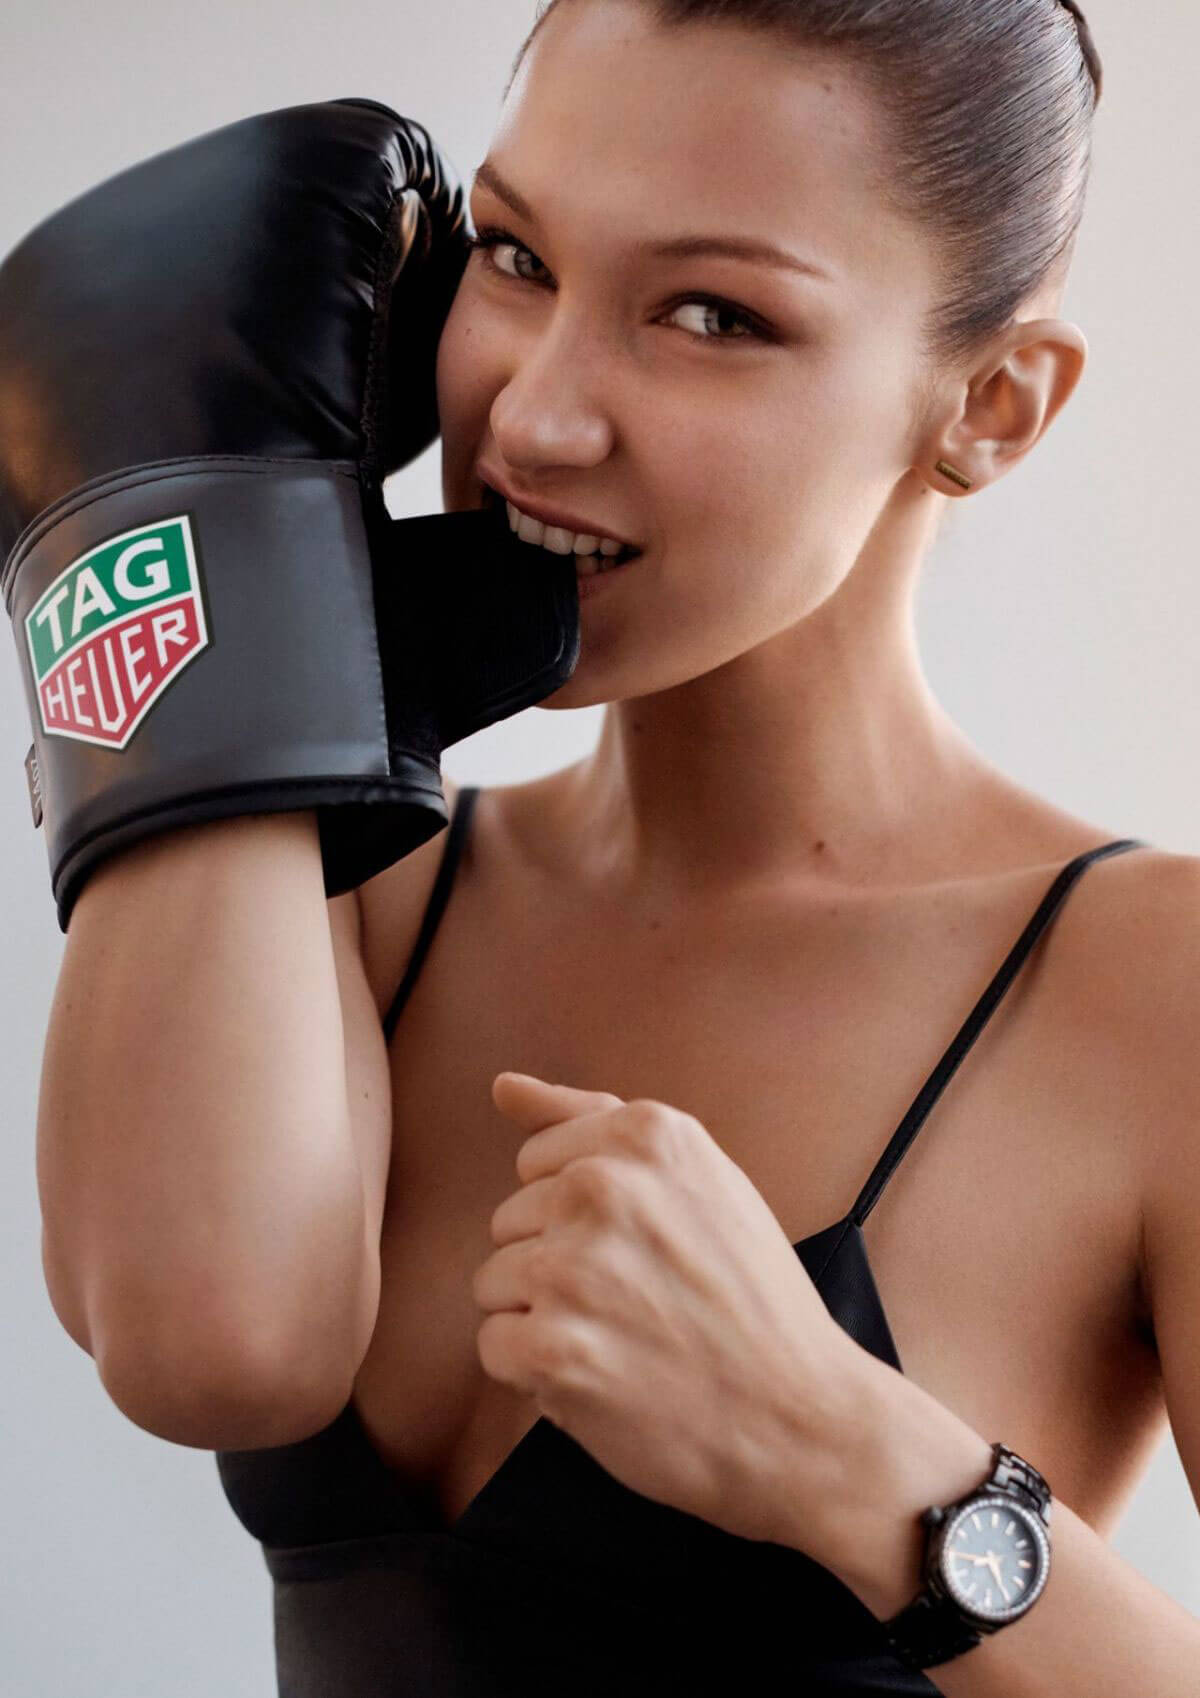 Bella Hadid for Tag Heuer Photoshoot 2017